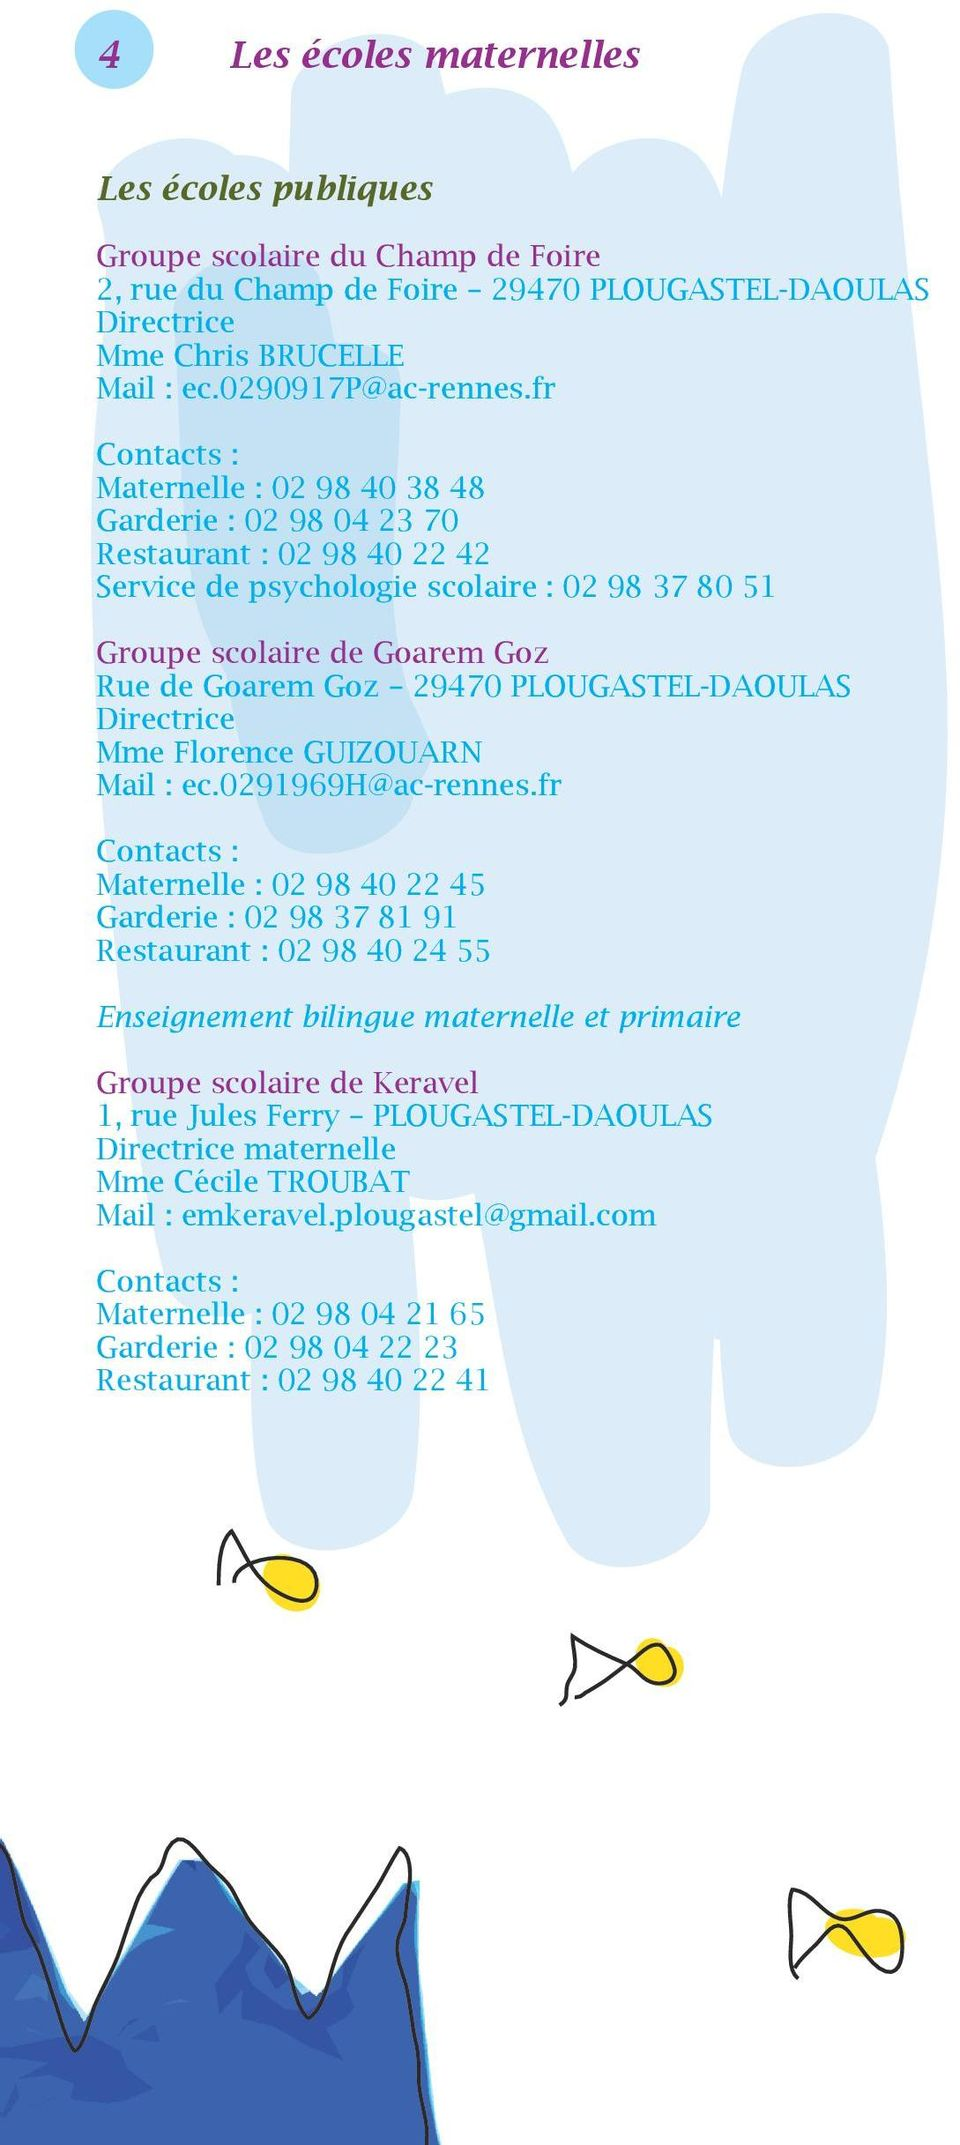 PLOUGASTEL-DAOULAS Directrice Mme Florence GUIZOUARN Mail : ec.0291969h@ac-rennes.